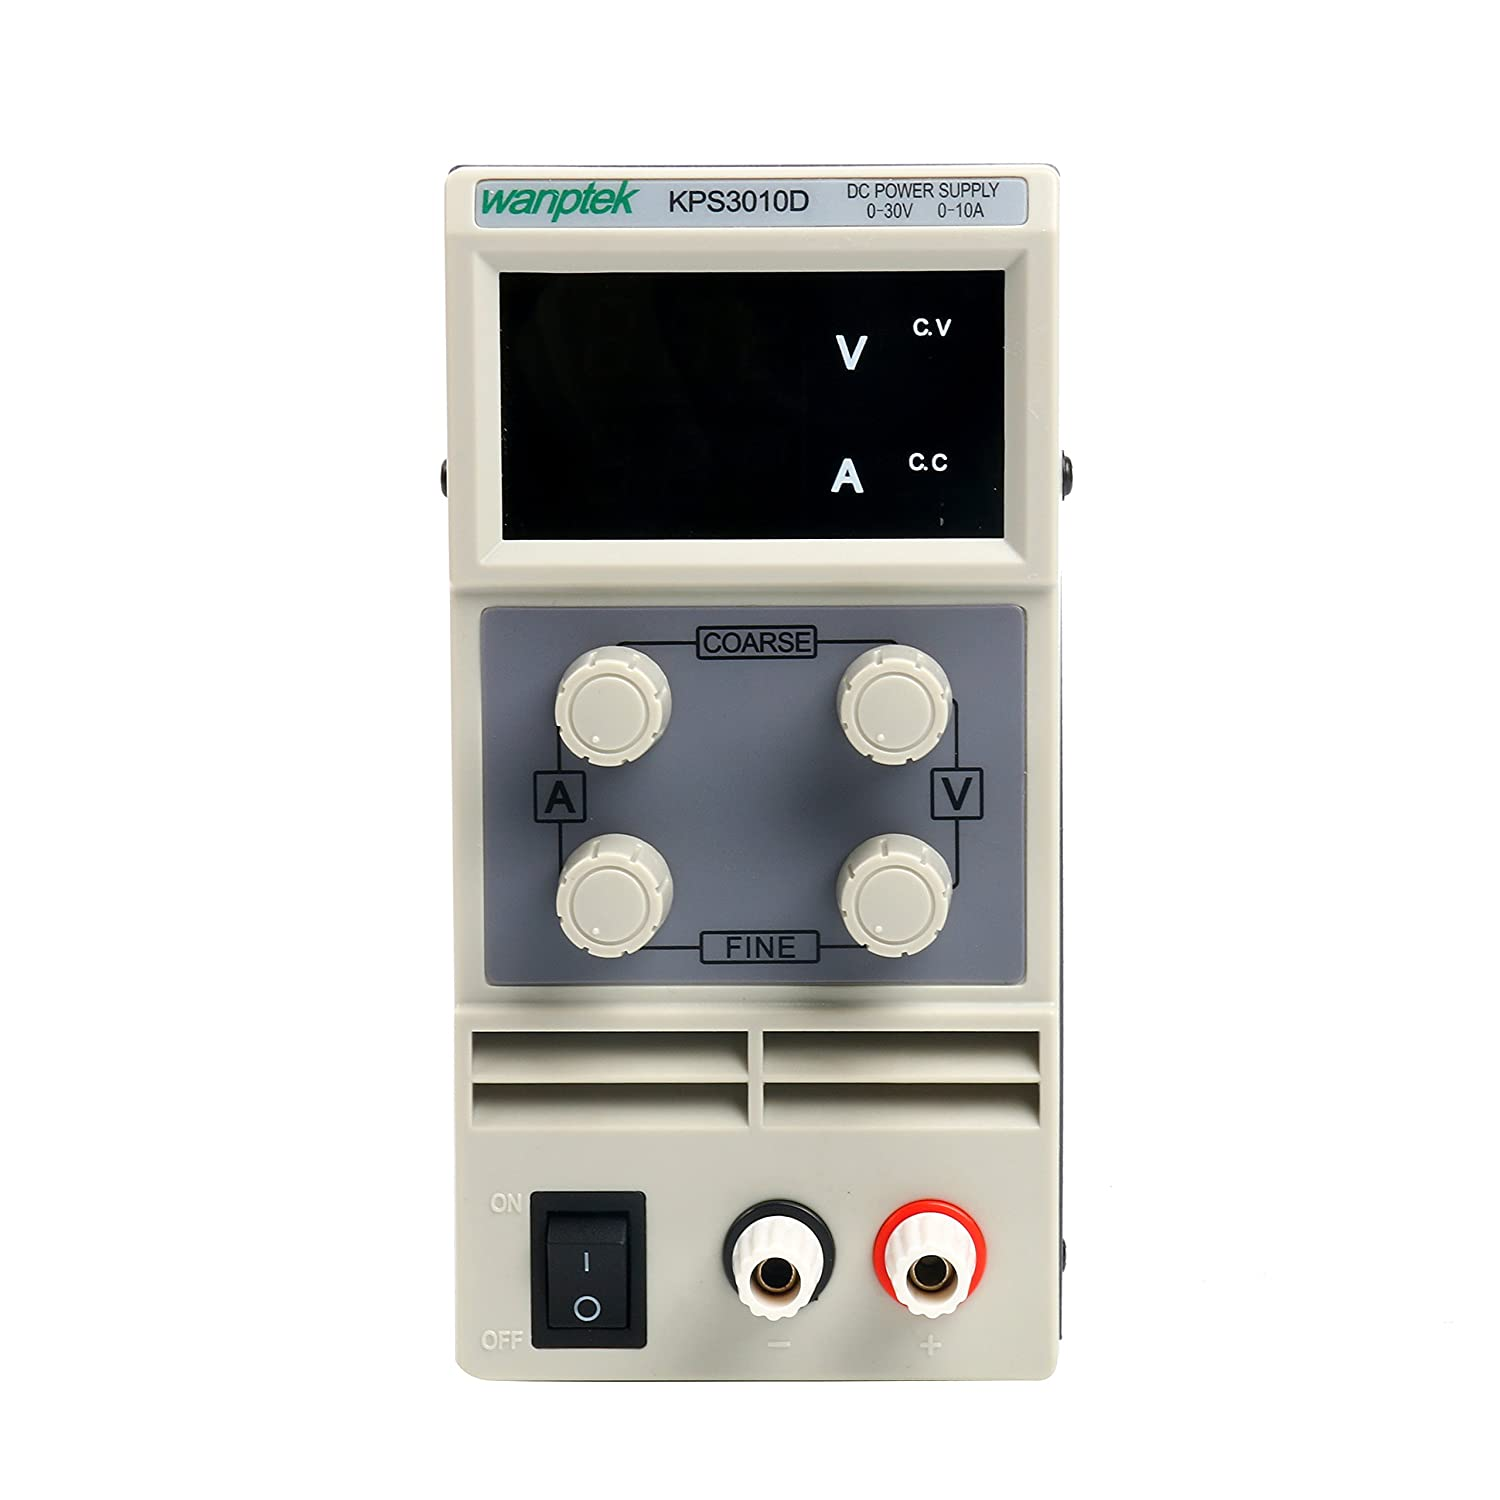 Dc Power Supply Variable 0 30 V 10 A Yaeccc Kps3010d Adjustable 30v0 2a Voltage And Current Regulator Switching Regulated Digital With Alligator Leads Us Cord Used For